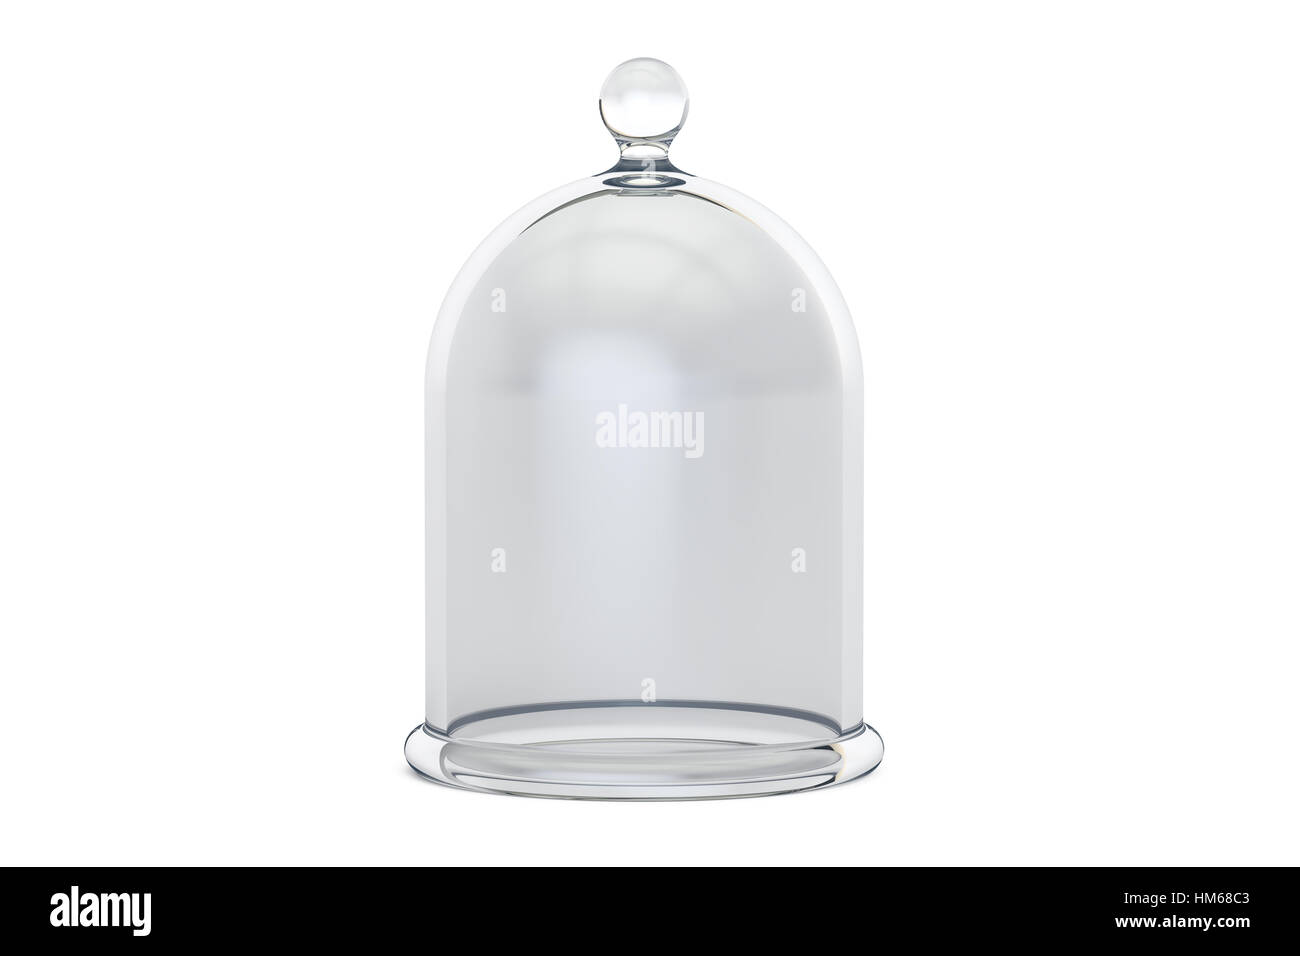 Glass Bell or Bell Jar, 3D rendering isolated on white background - Stock Image